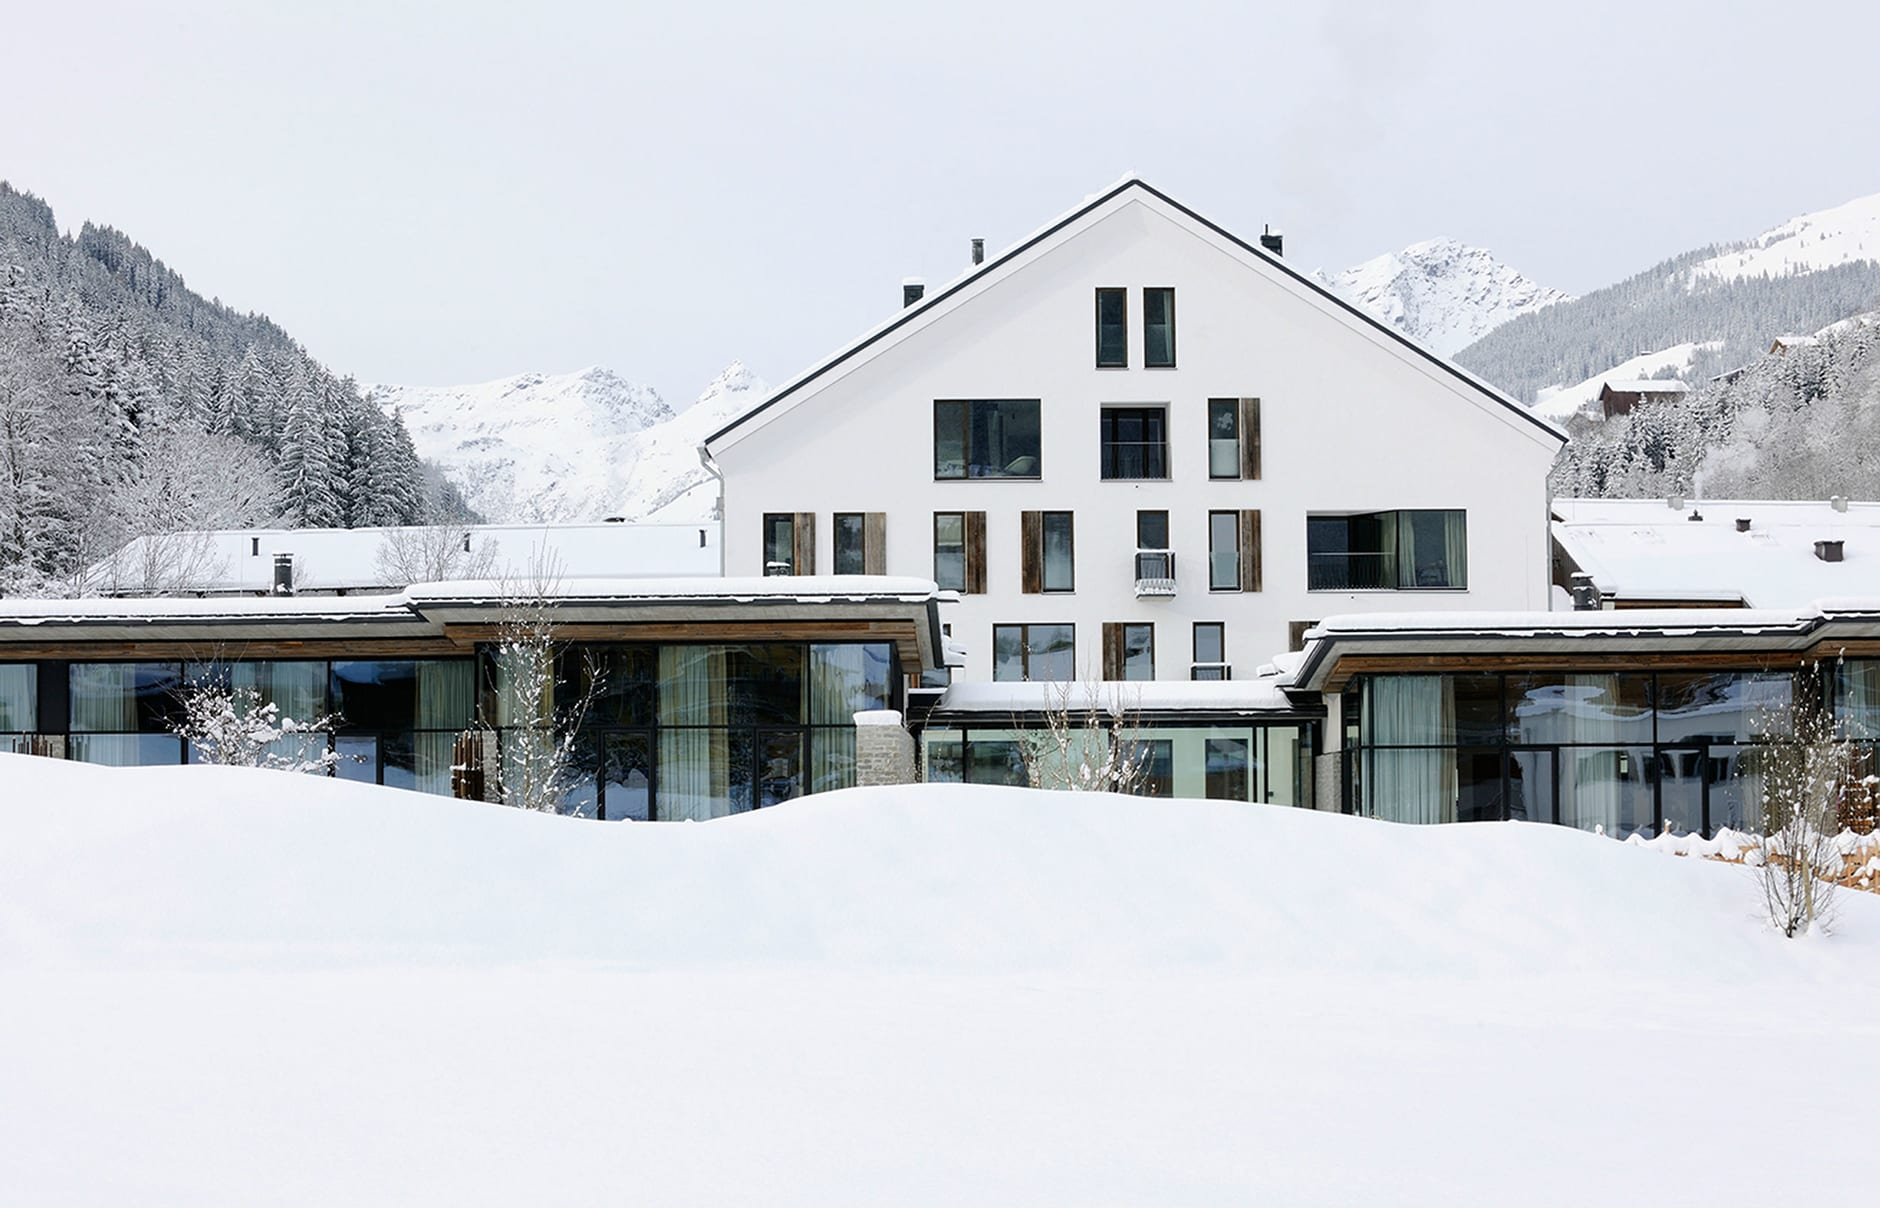 Wiesergut, Saalbach-Hinterglemm, Austria. Hotel Review by TravelPlusStyle. Photo © Wiesergut